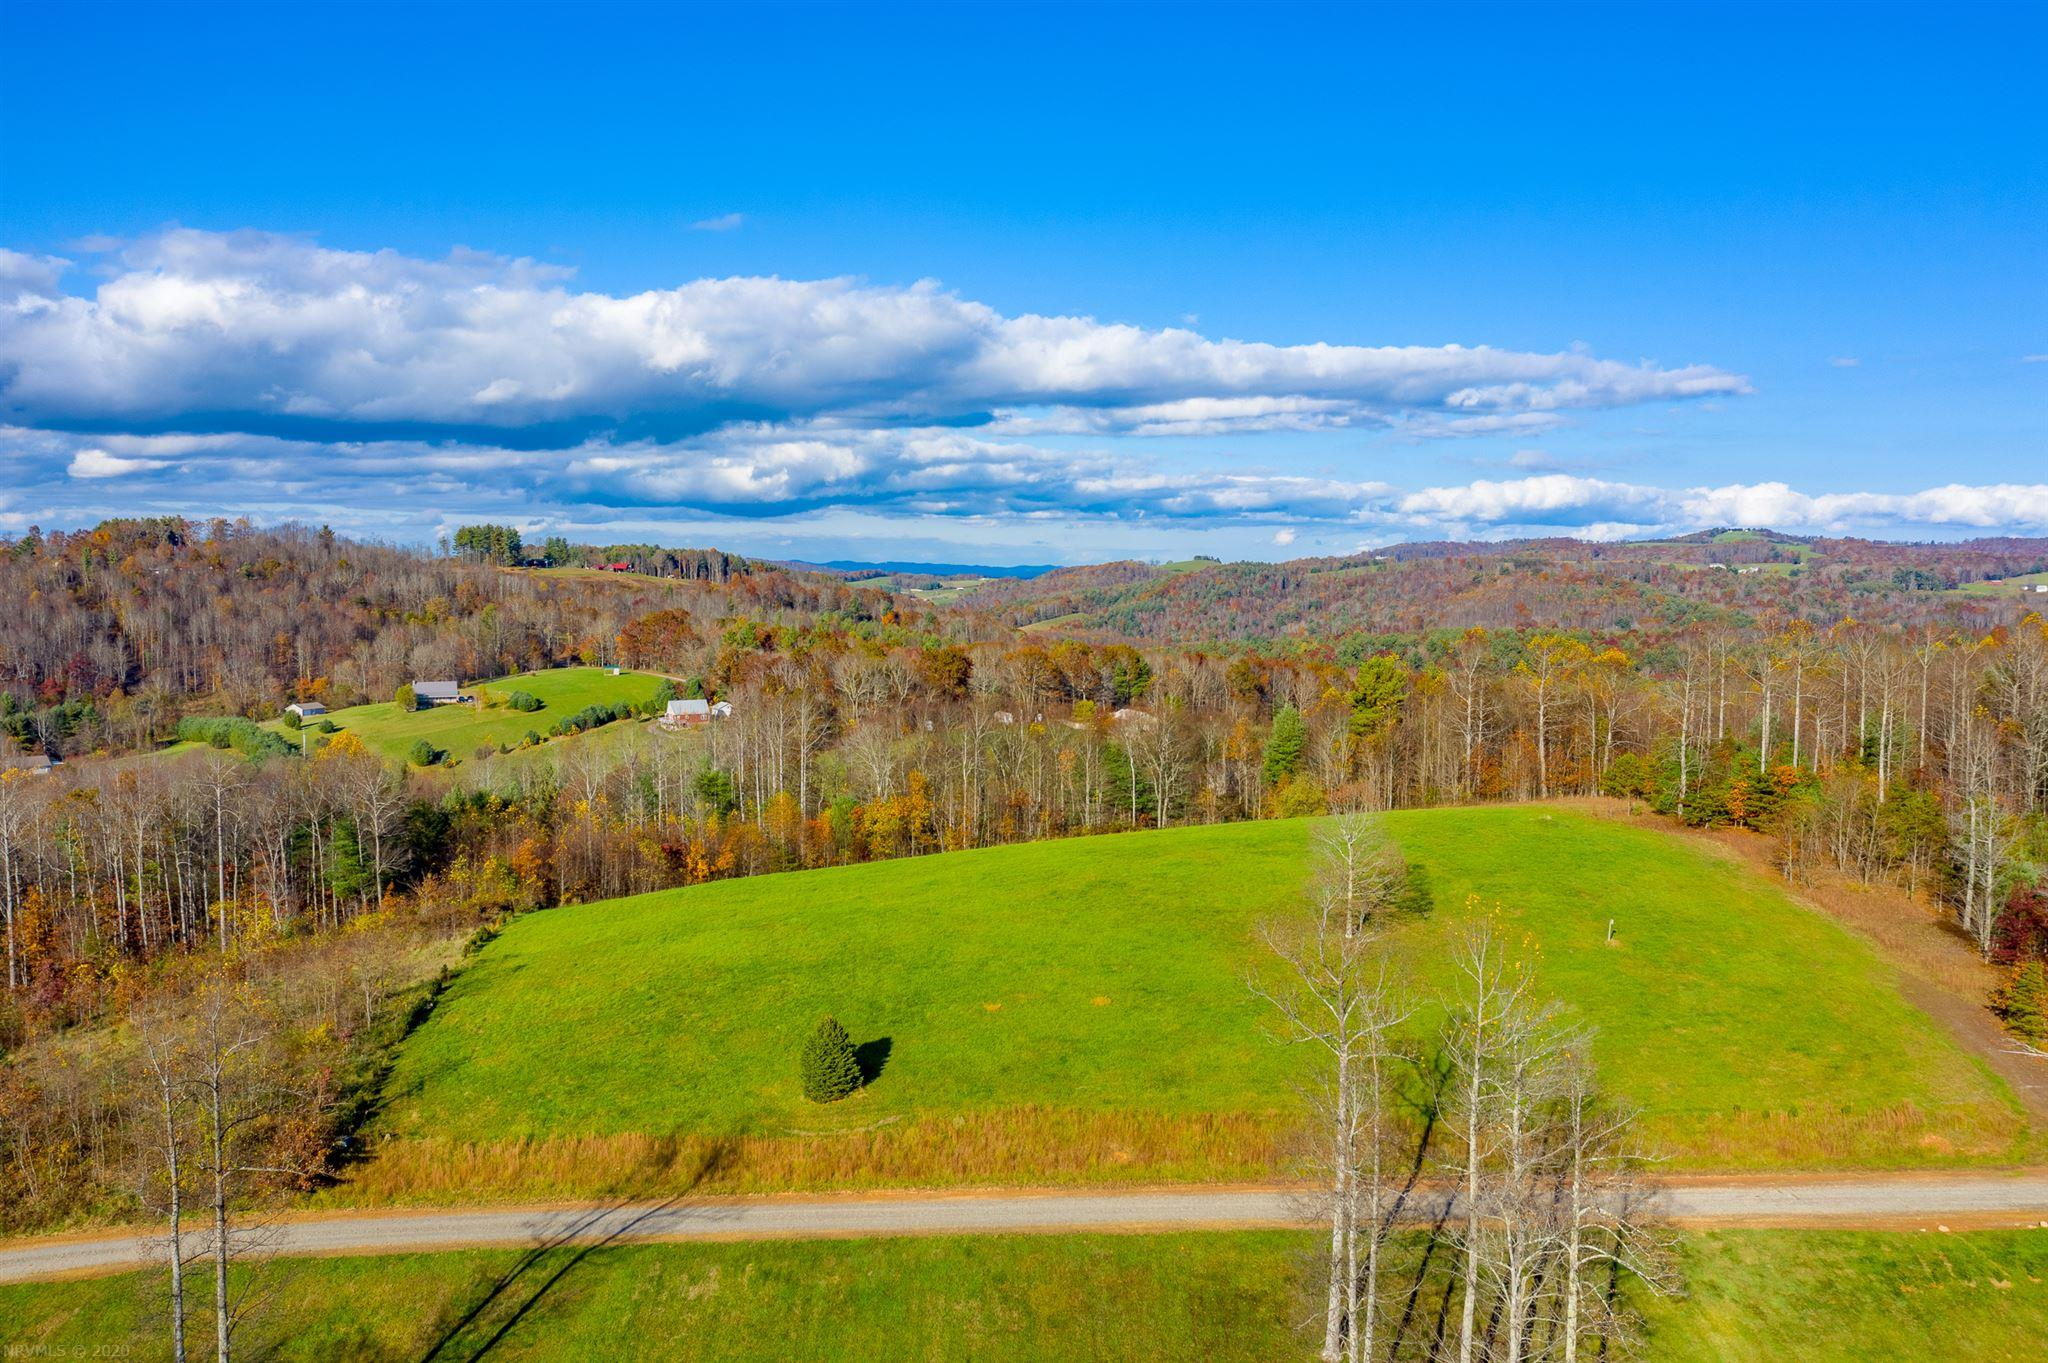 Come enjoy the beauty this 5 acre tract offers. The grassy knoll sits nearly 3000 ft above sea level providing a close to 360 view! You won't find a better tract to build your dream home with a mountain view. The road to the tract has been recently graded, making it easily accessible for all vehicles. The tract offers a mix of clear, level land and wooded areas ensuring just enough space for whatever recreation you'd like to pursue. Great location provides seclusion yet close enough to town to grab whatever you need. This view can't be matched, call to schedule a tour today!